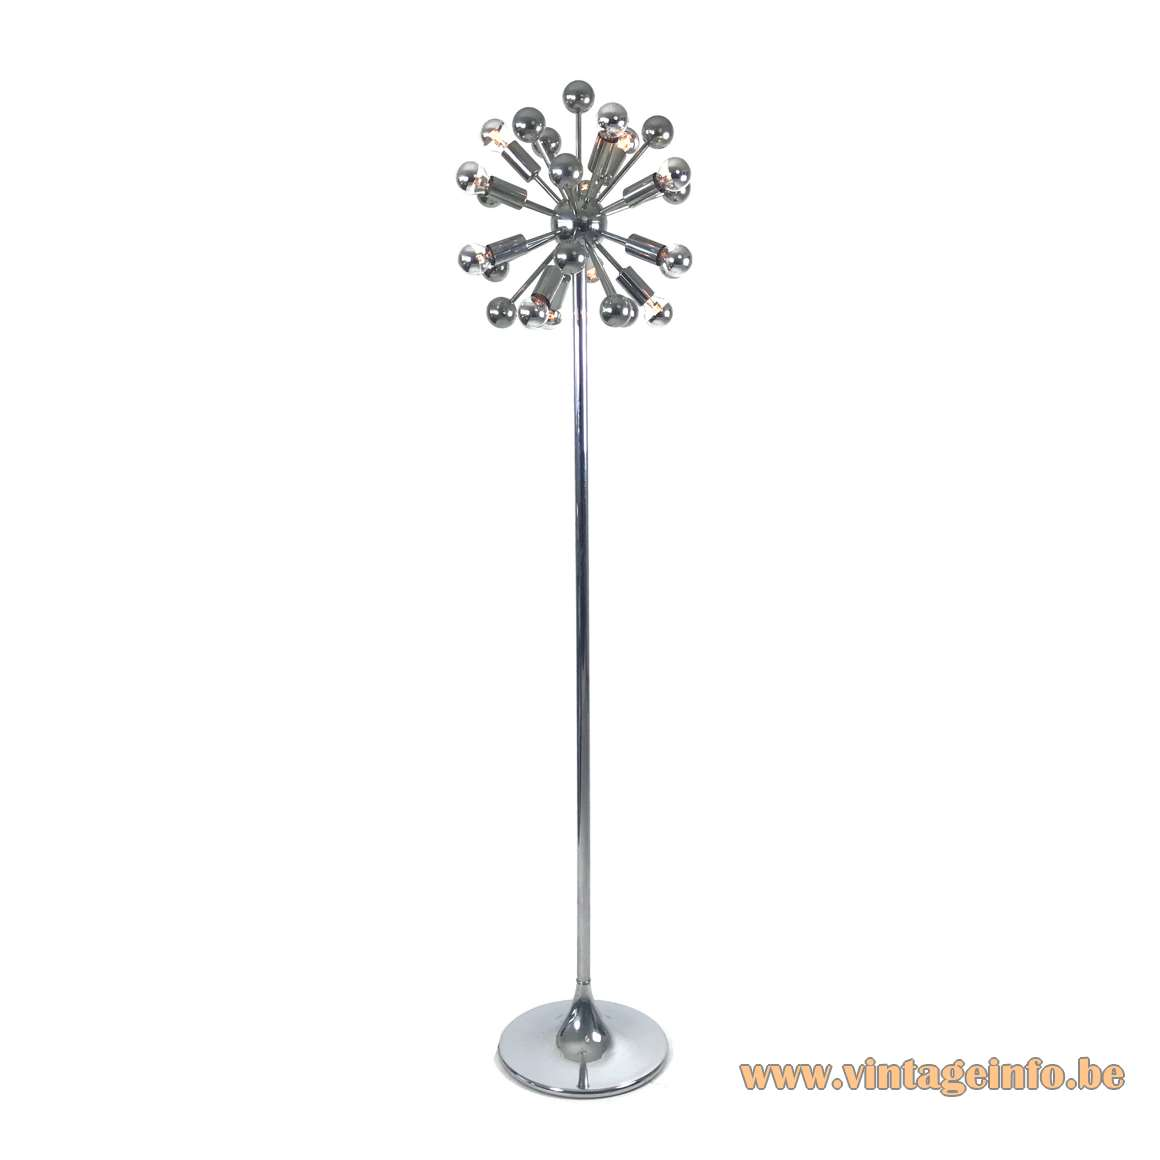 Cosack sputnik floor lamp completely made of chrome 12 e14 light bulbs Germany MCM 1960s 1970s